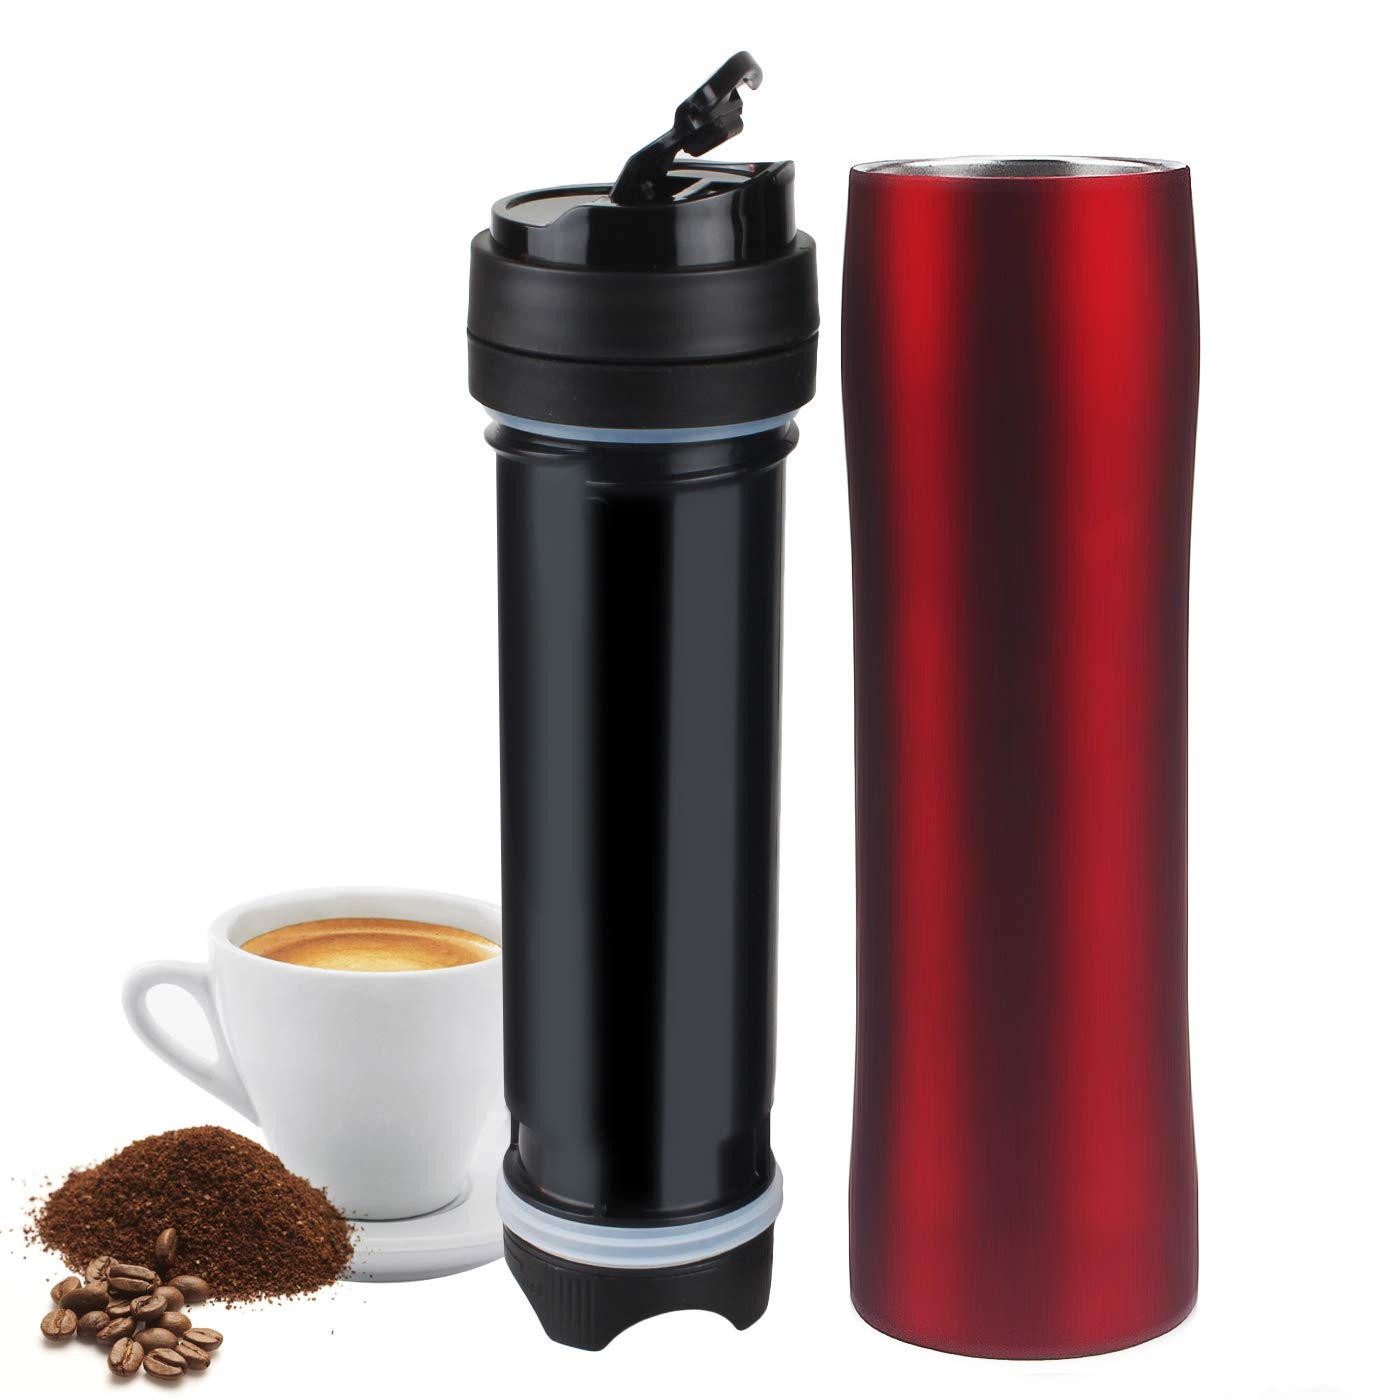 Portable French Press Coffee Maker,Vacuum Insulated Travel Mug, Premium Stainless Steel, Hot and Cold Brew (12 oz), Great for Commuter, Camping, Outdoors, Office (Red)